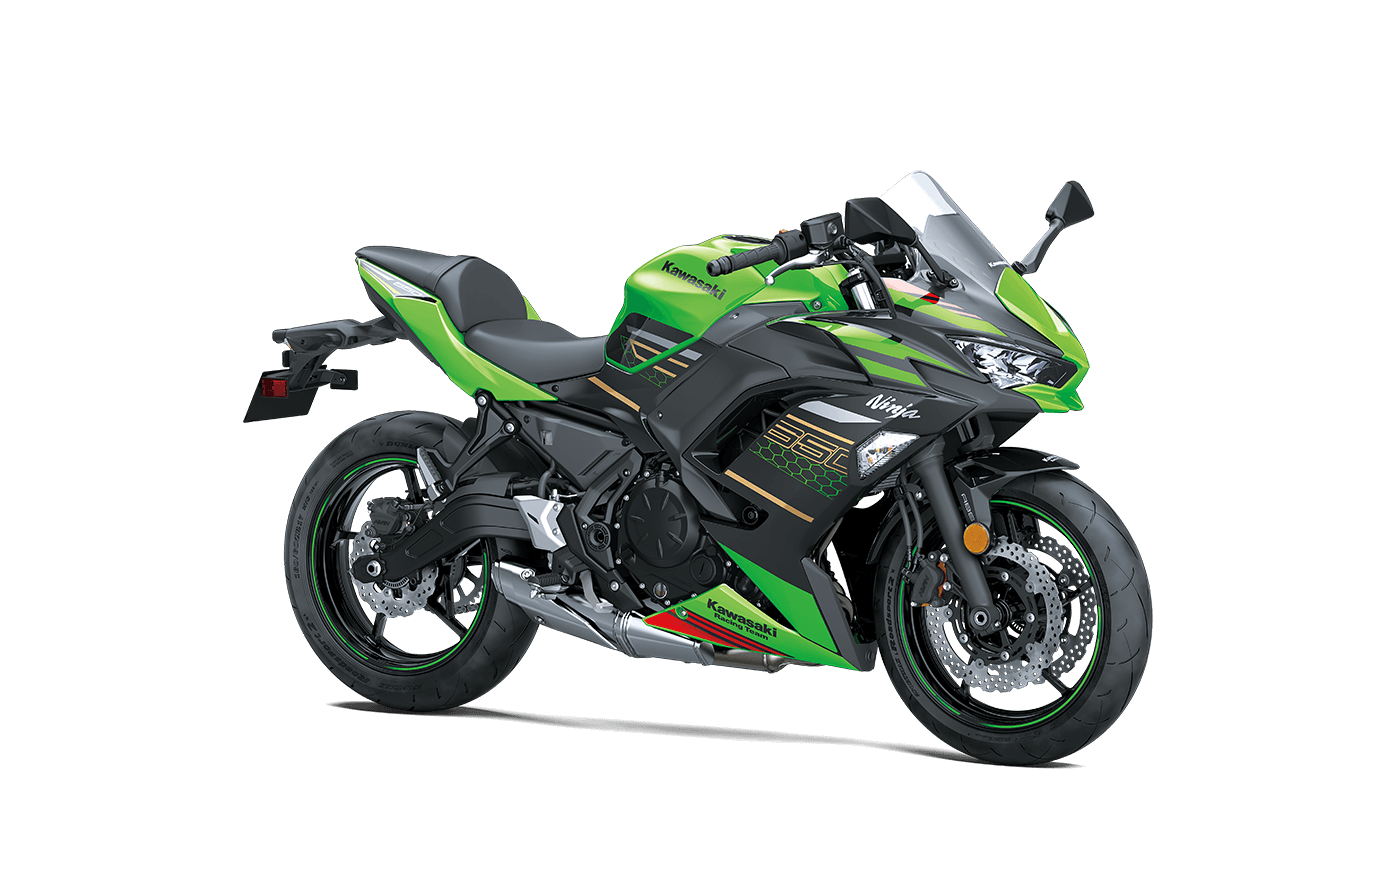 2020 NINJA® 650 ABS KRT EDITION